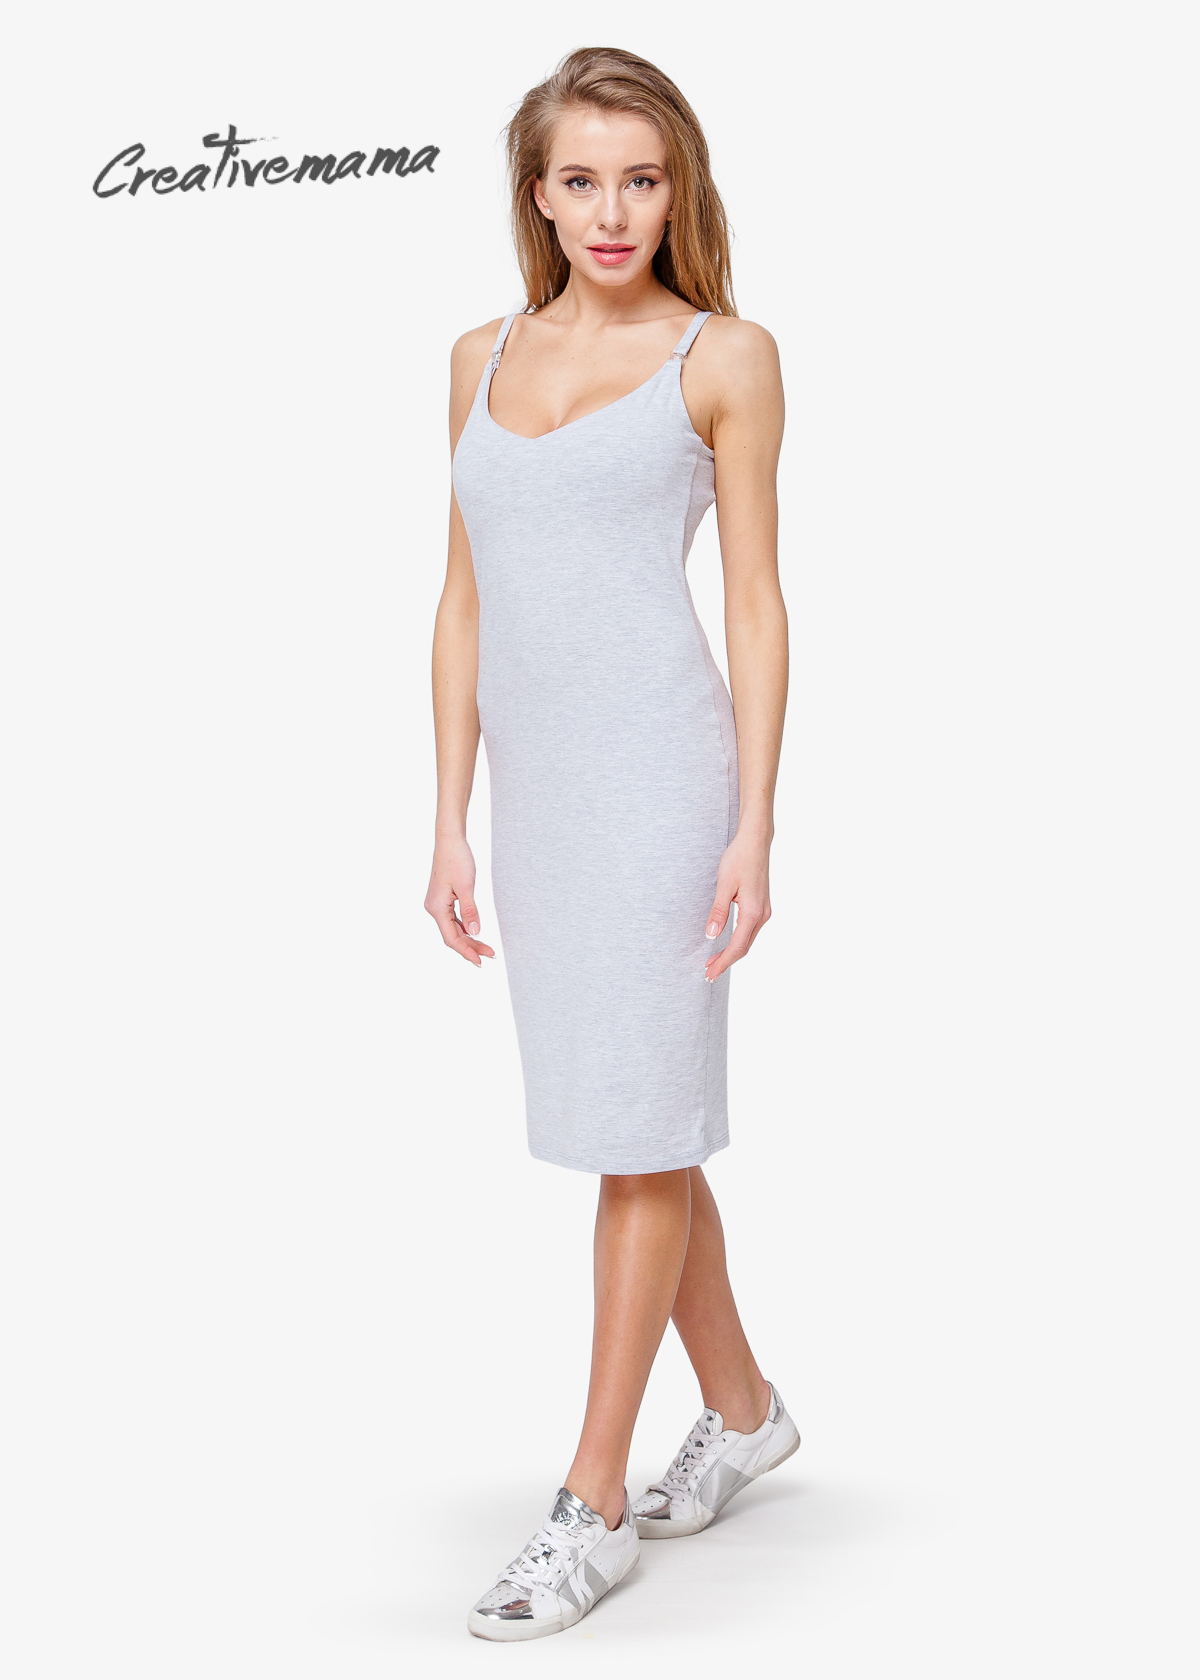 ПЛАТЬЕ ТОП BODYCON LATTE (ХЛОПОК) фото 4